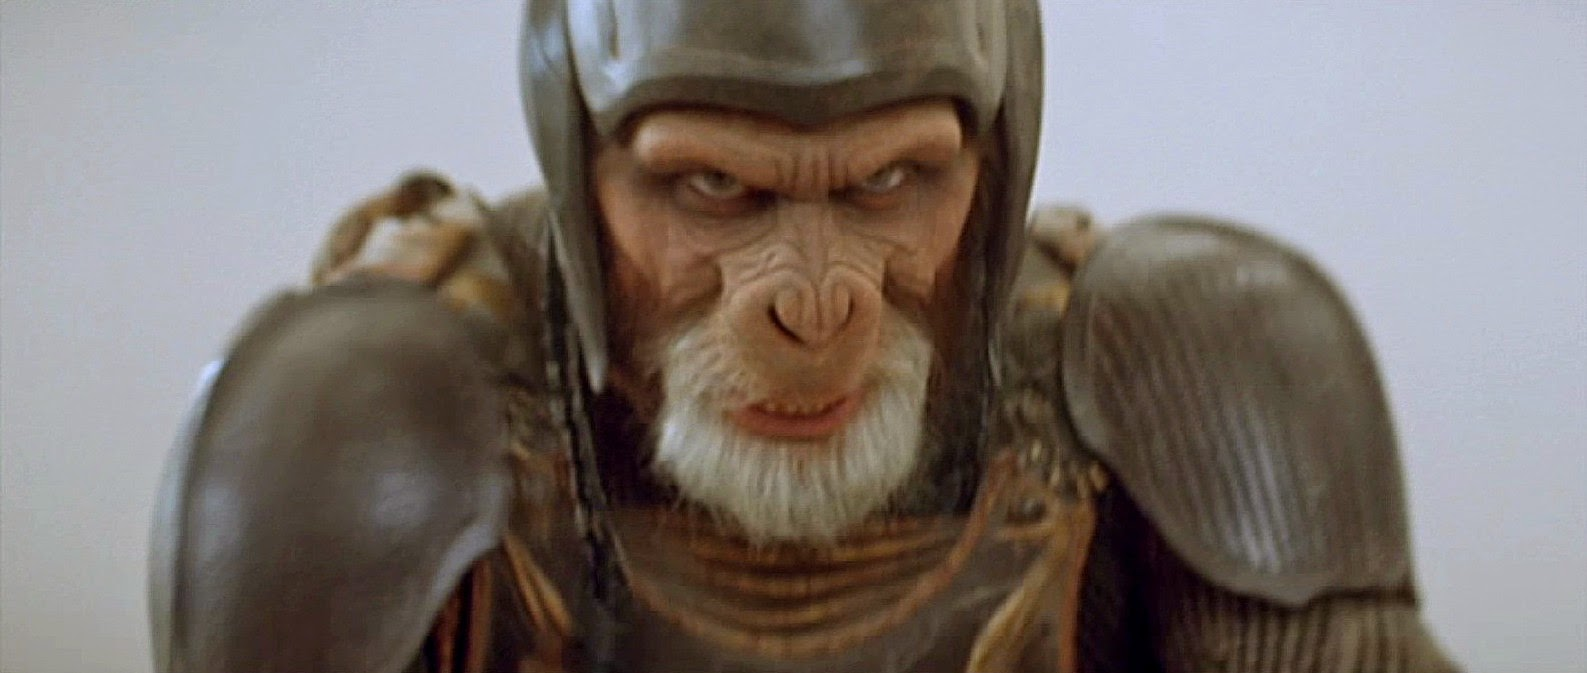 Archives Of The Apes Tim Burton S Planet Of The Apes 2001